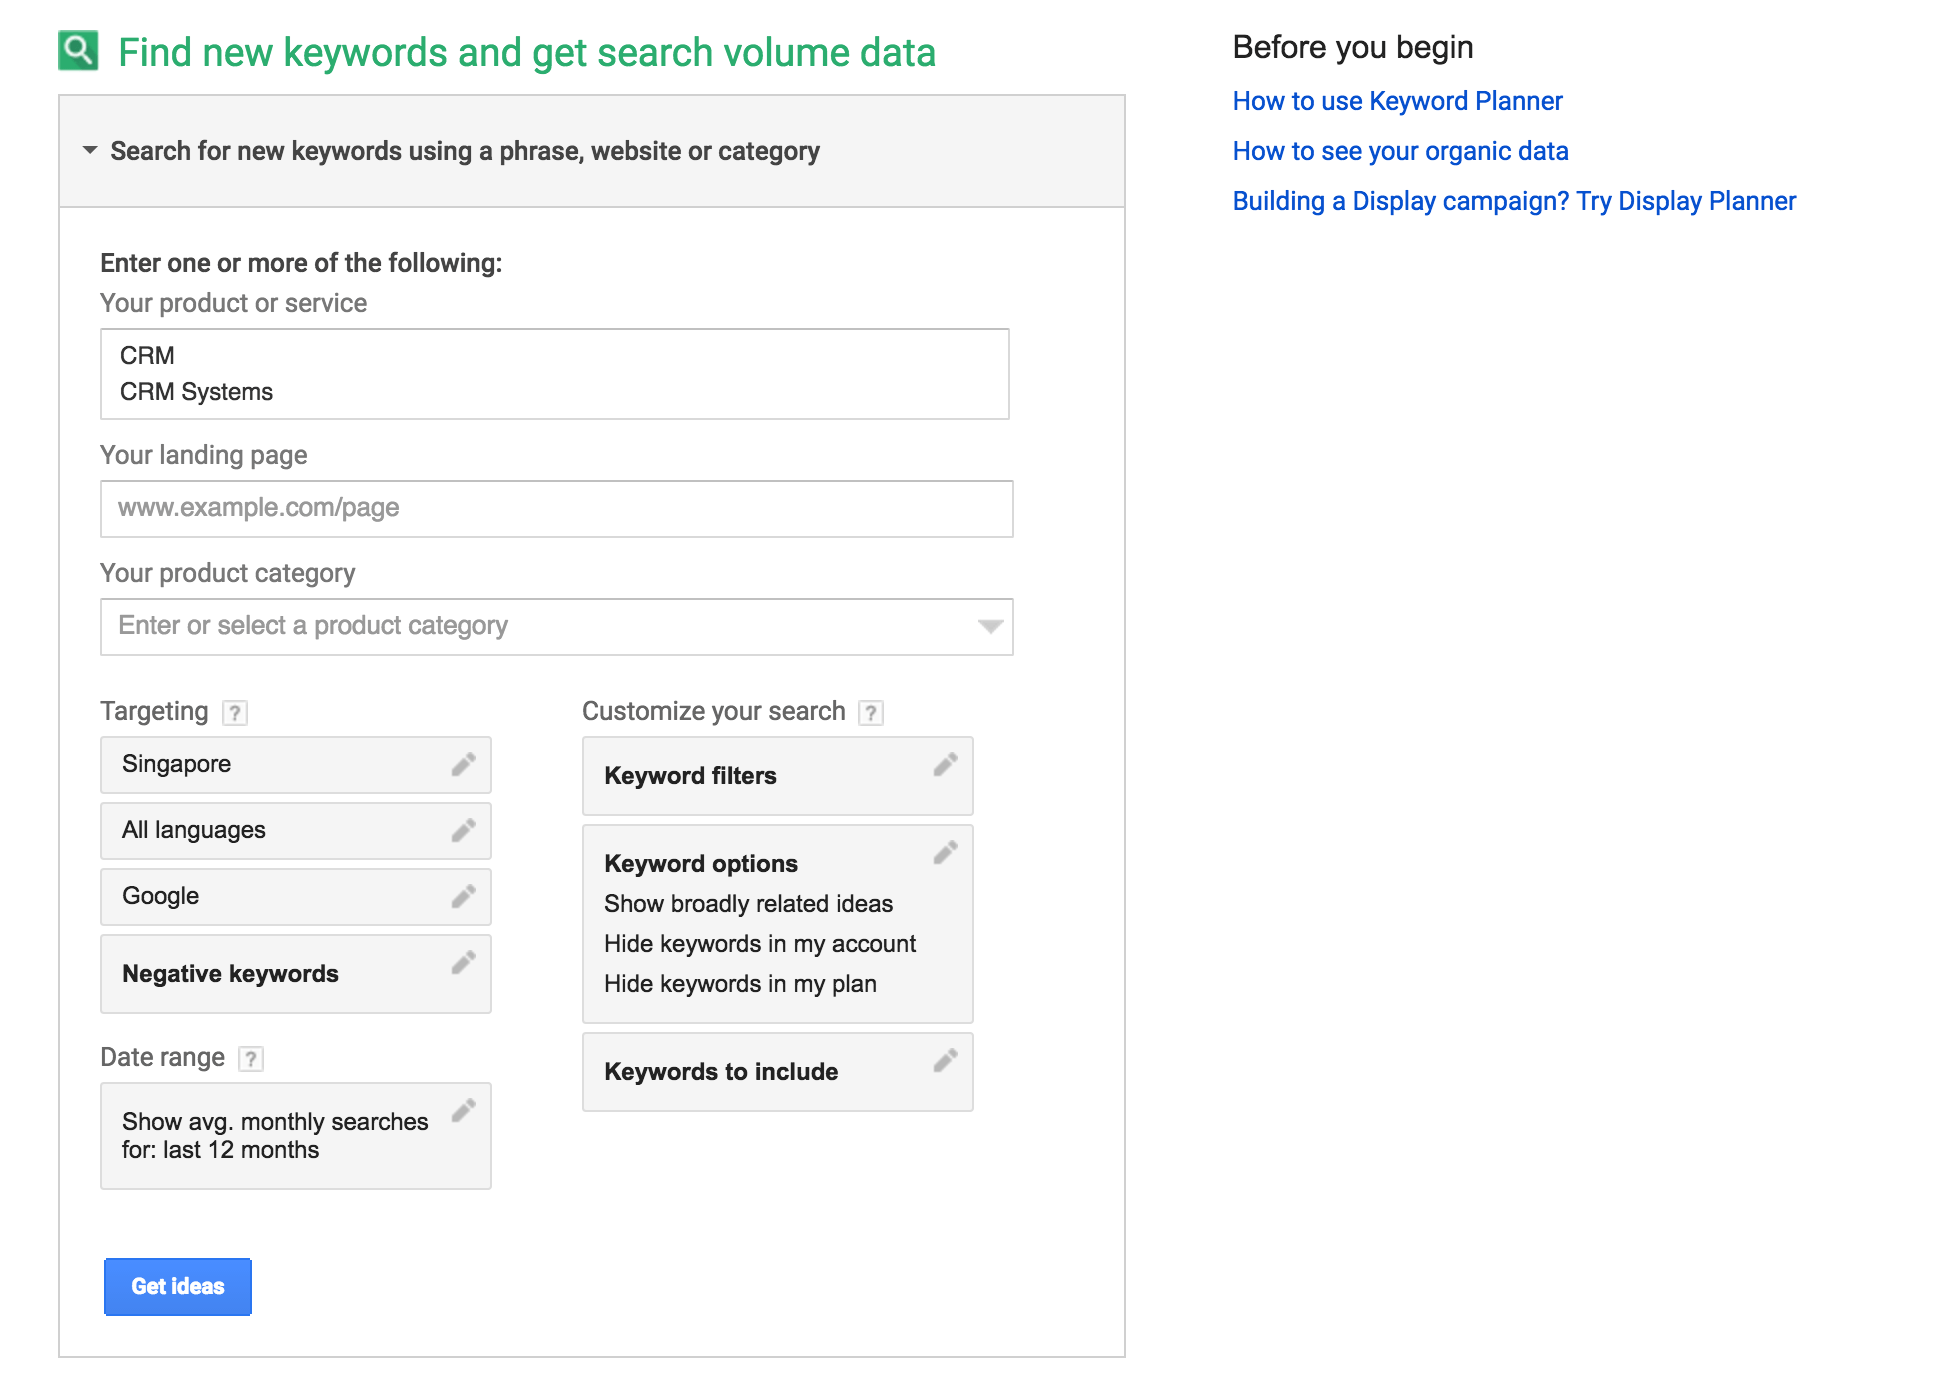 find new keywords and get search volume data